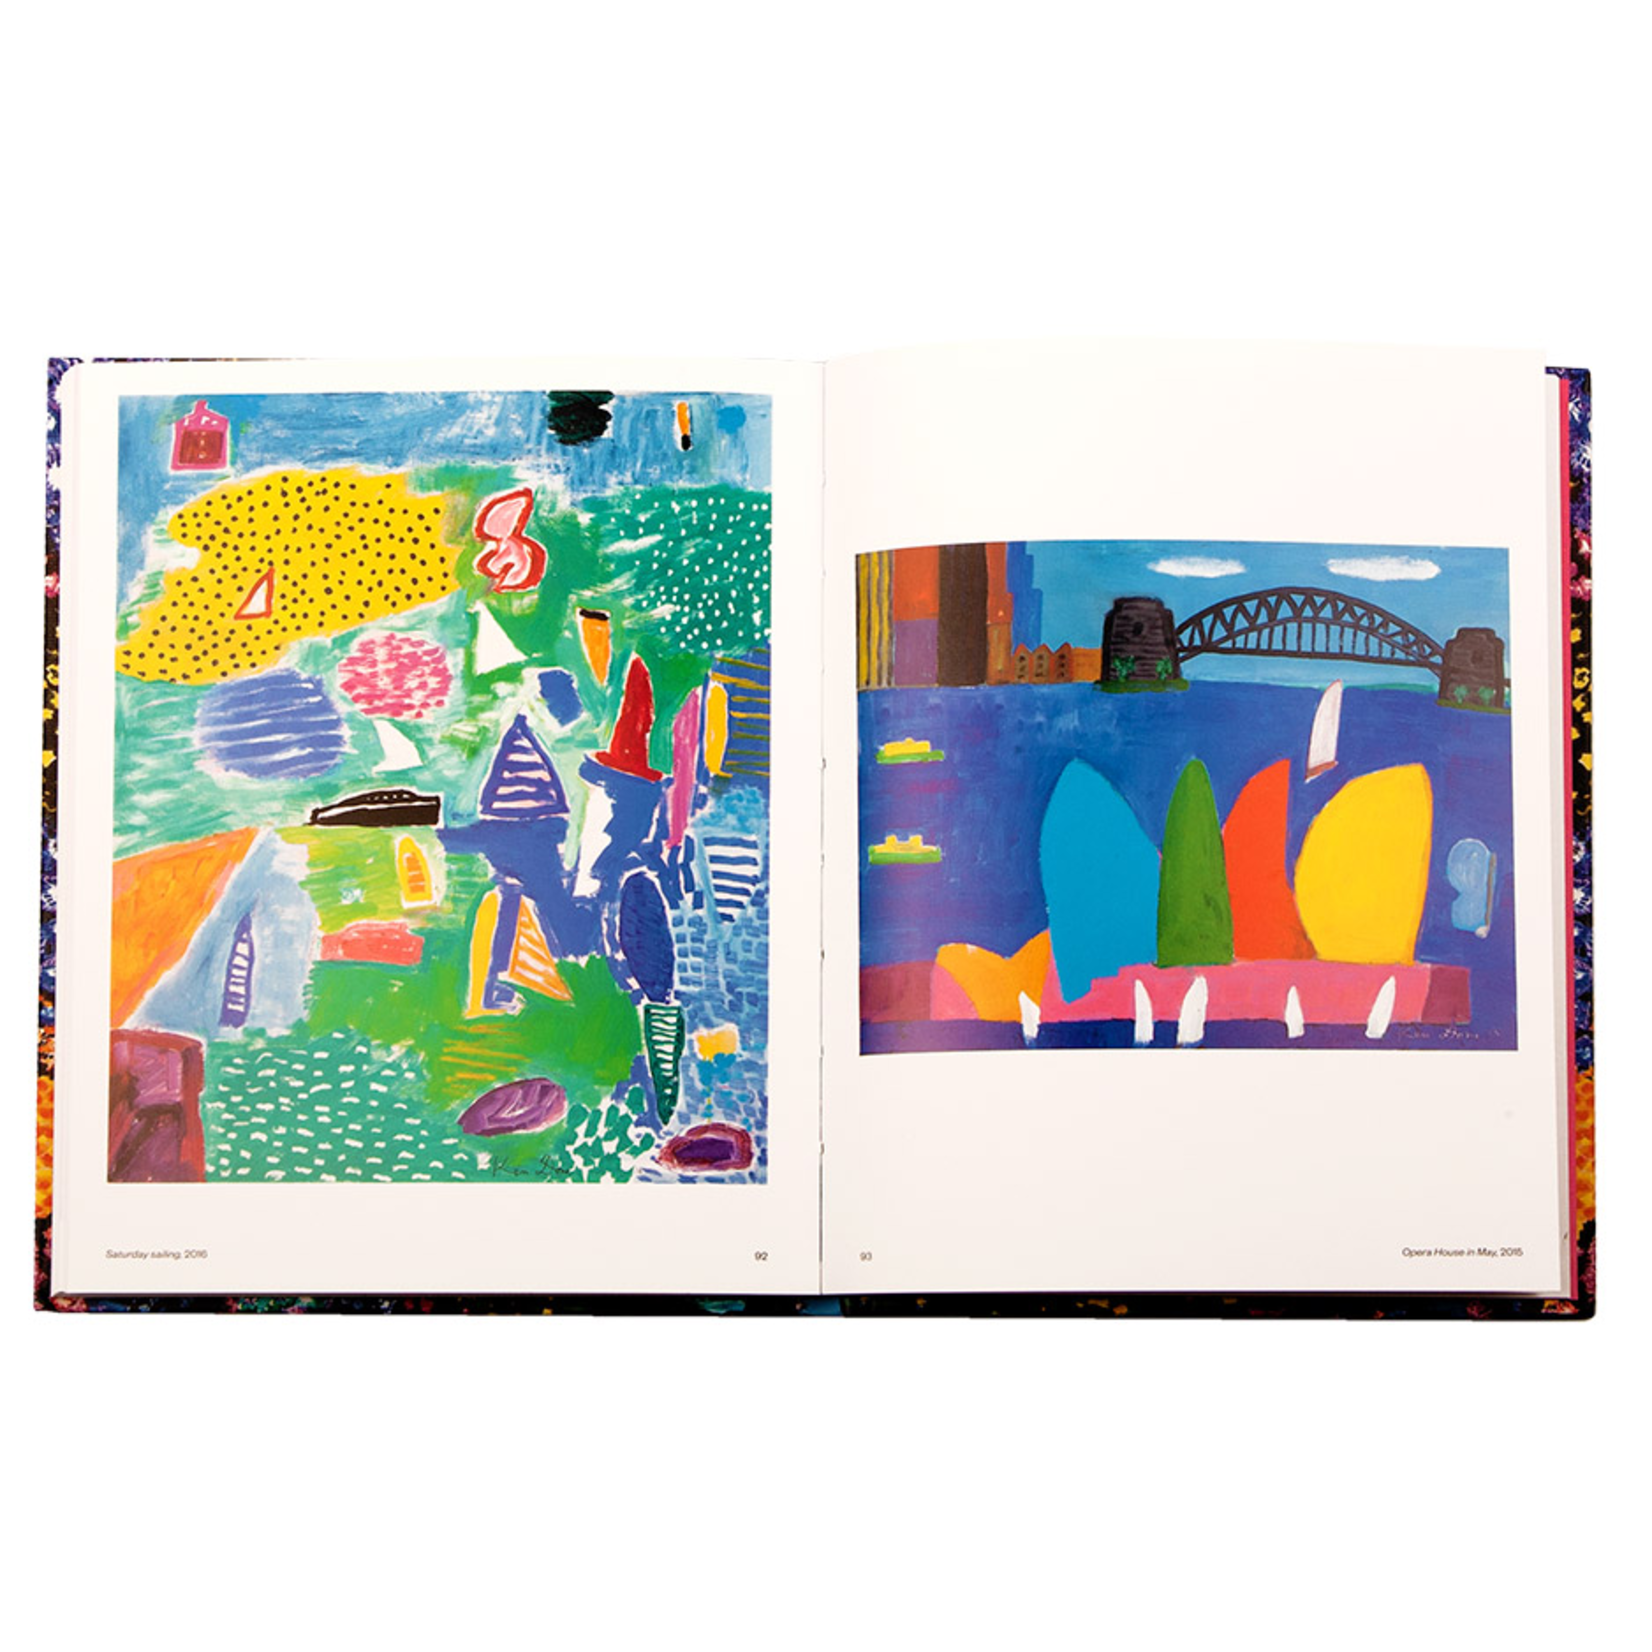 Books & Stationery Book - Ken Done: Sydney - Hardcover mini book